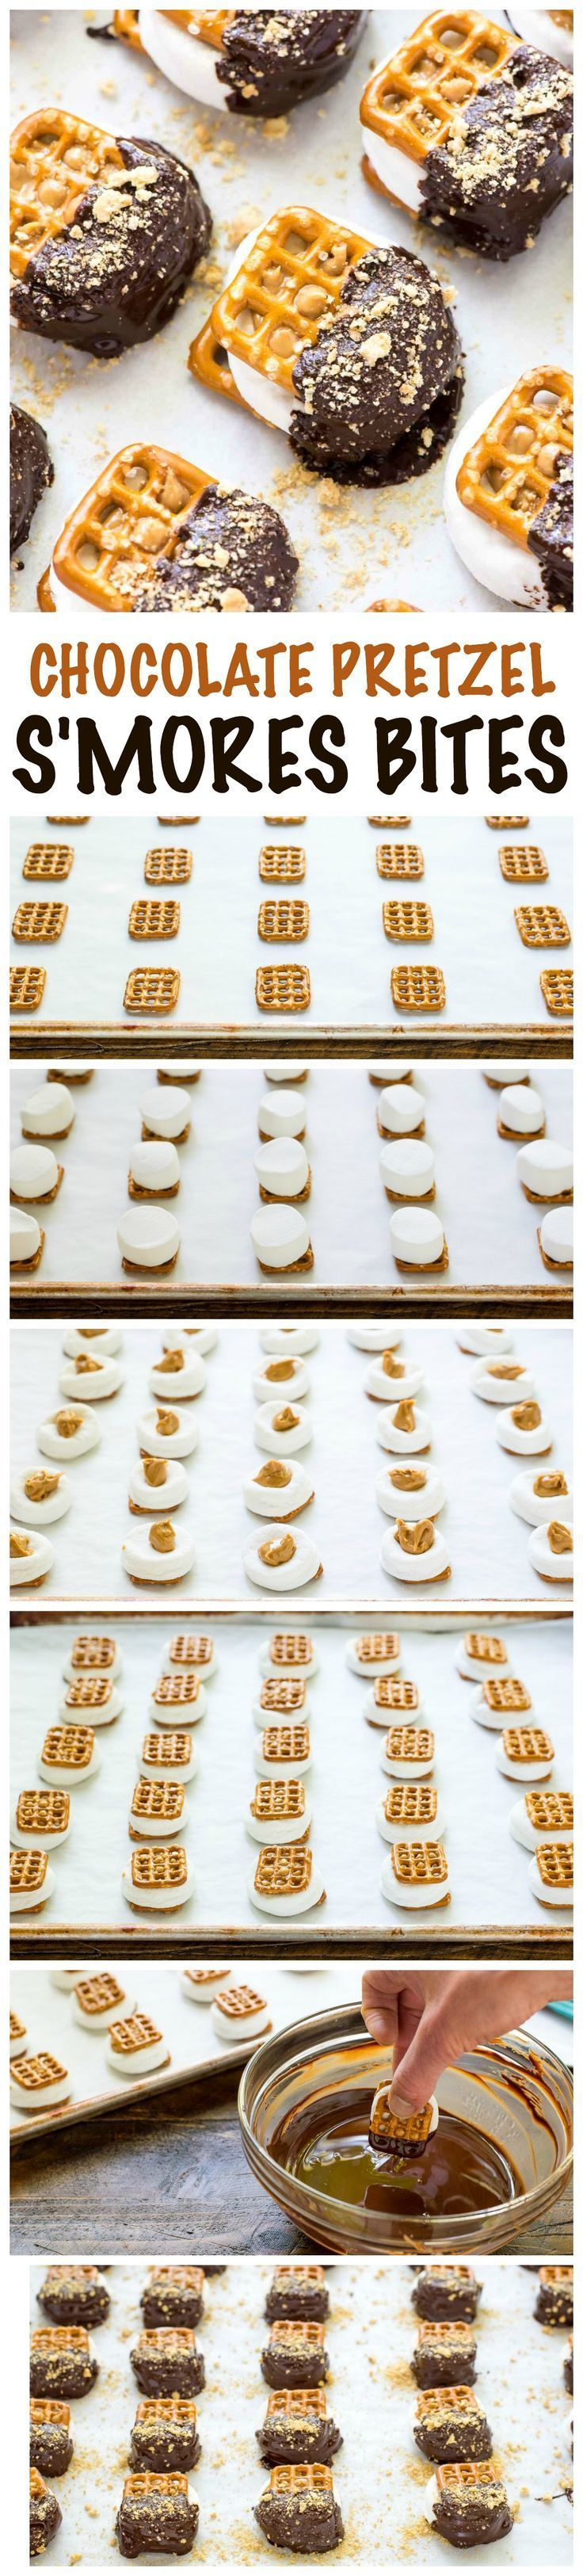 """Easy Indoor Pretzel Smores—a marshmallow peanut butter pretzel """"sandwich"""" baked to gooey perfection, then dipped in chocolate. EASY recipe that's fun to make with kids or bring to a party. Recipe at http://wellplated.com @wellplated"""